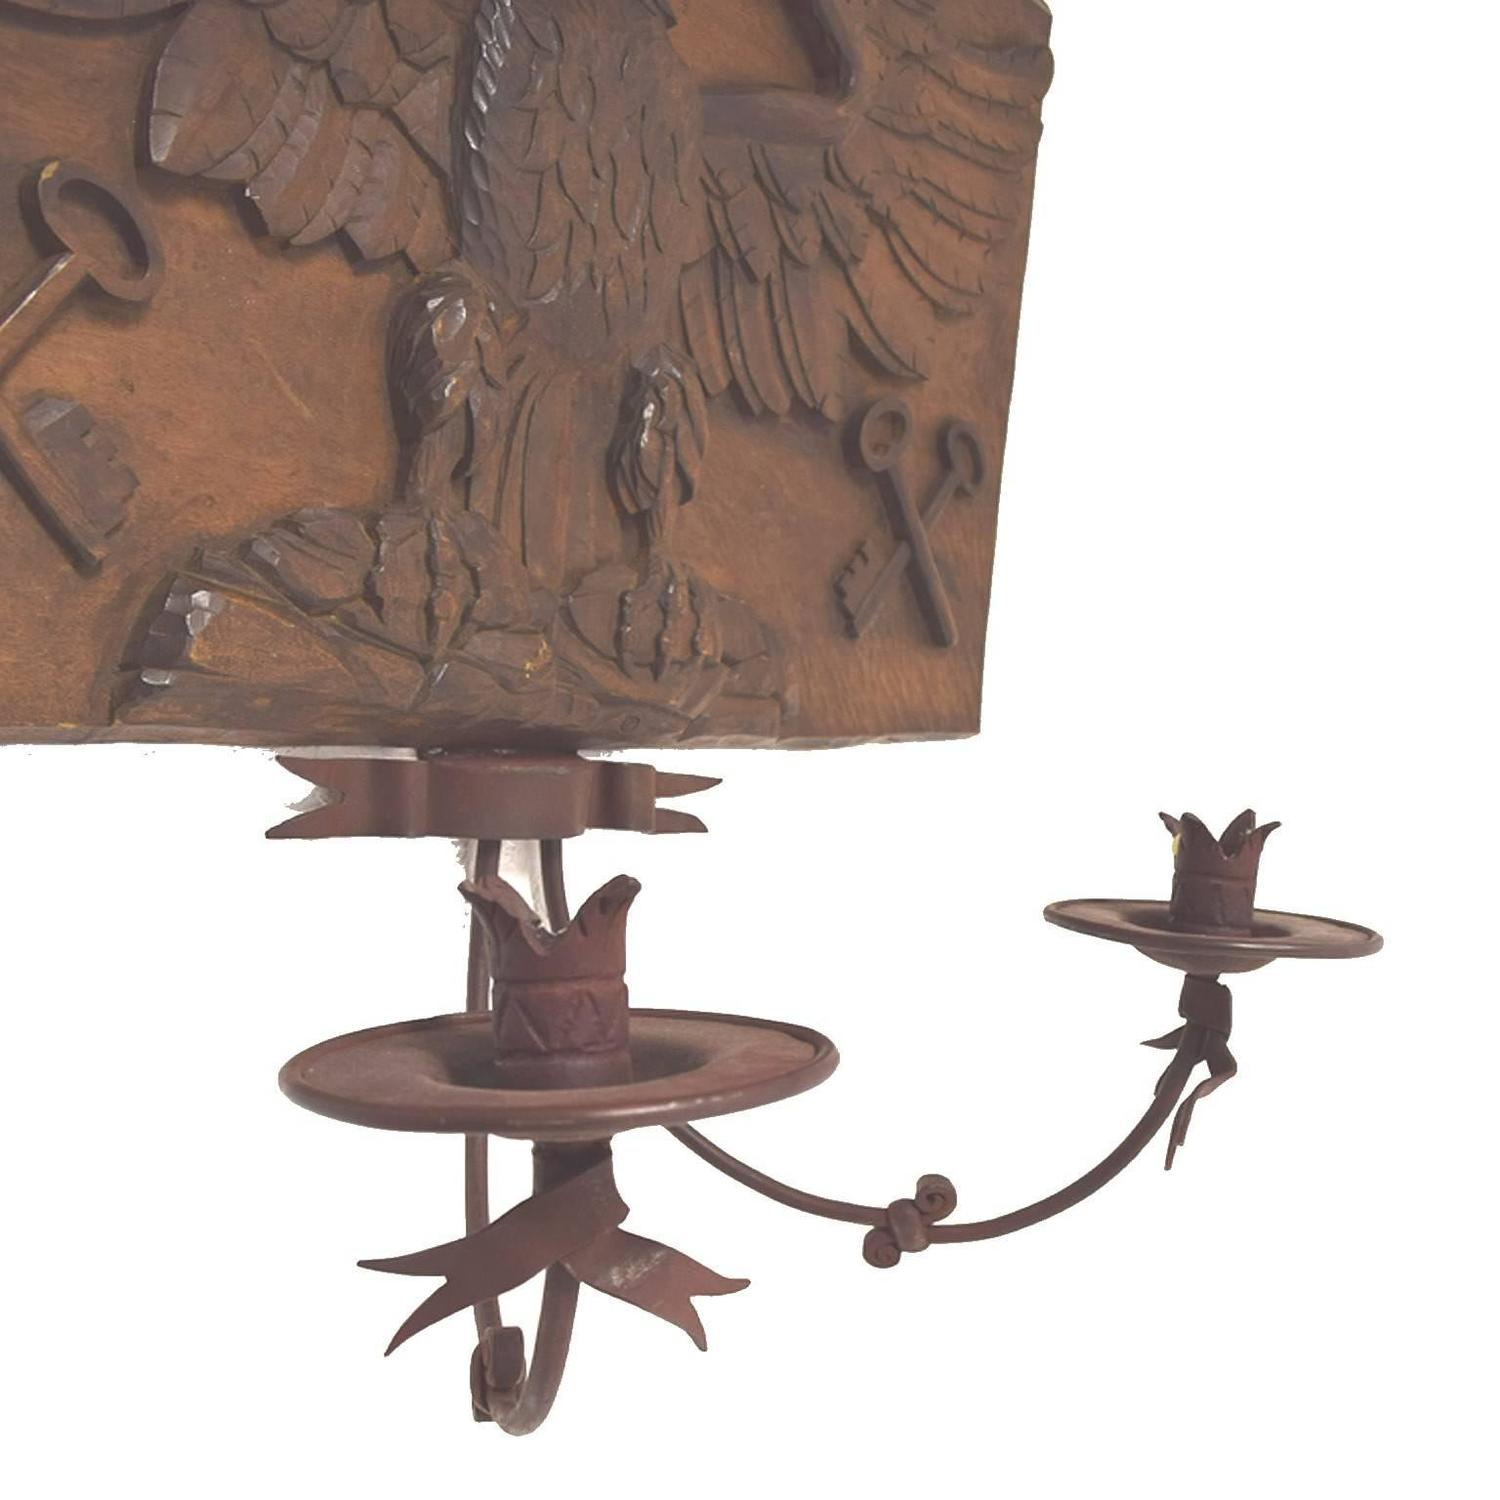 Decorative Antique Wall Sconces : Very Decorative Antique Austrian Walnut-Iron Double Arm Wall Sconce; circa 1870 For Sale at 1stdibs